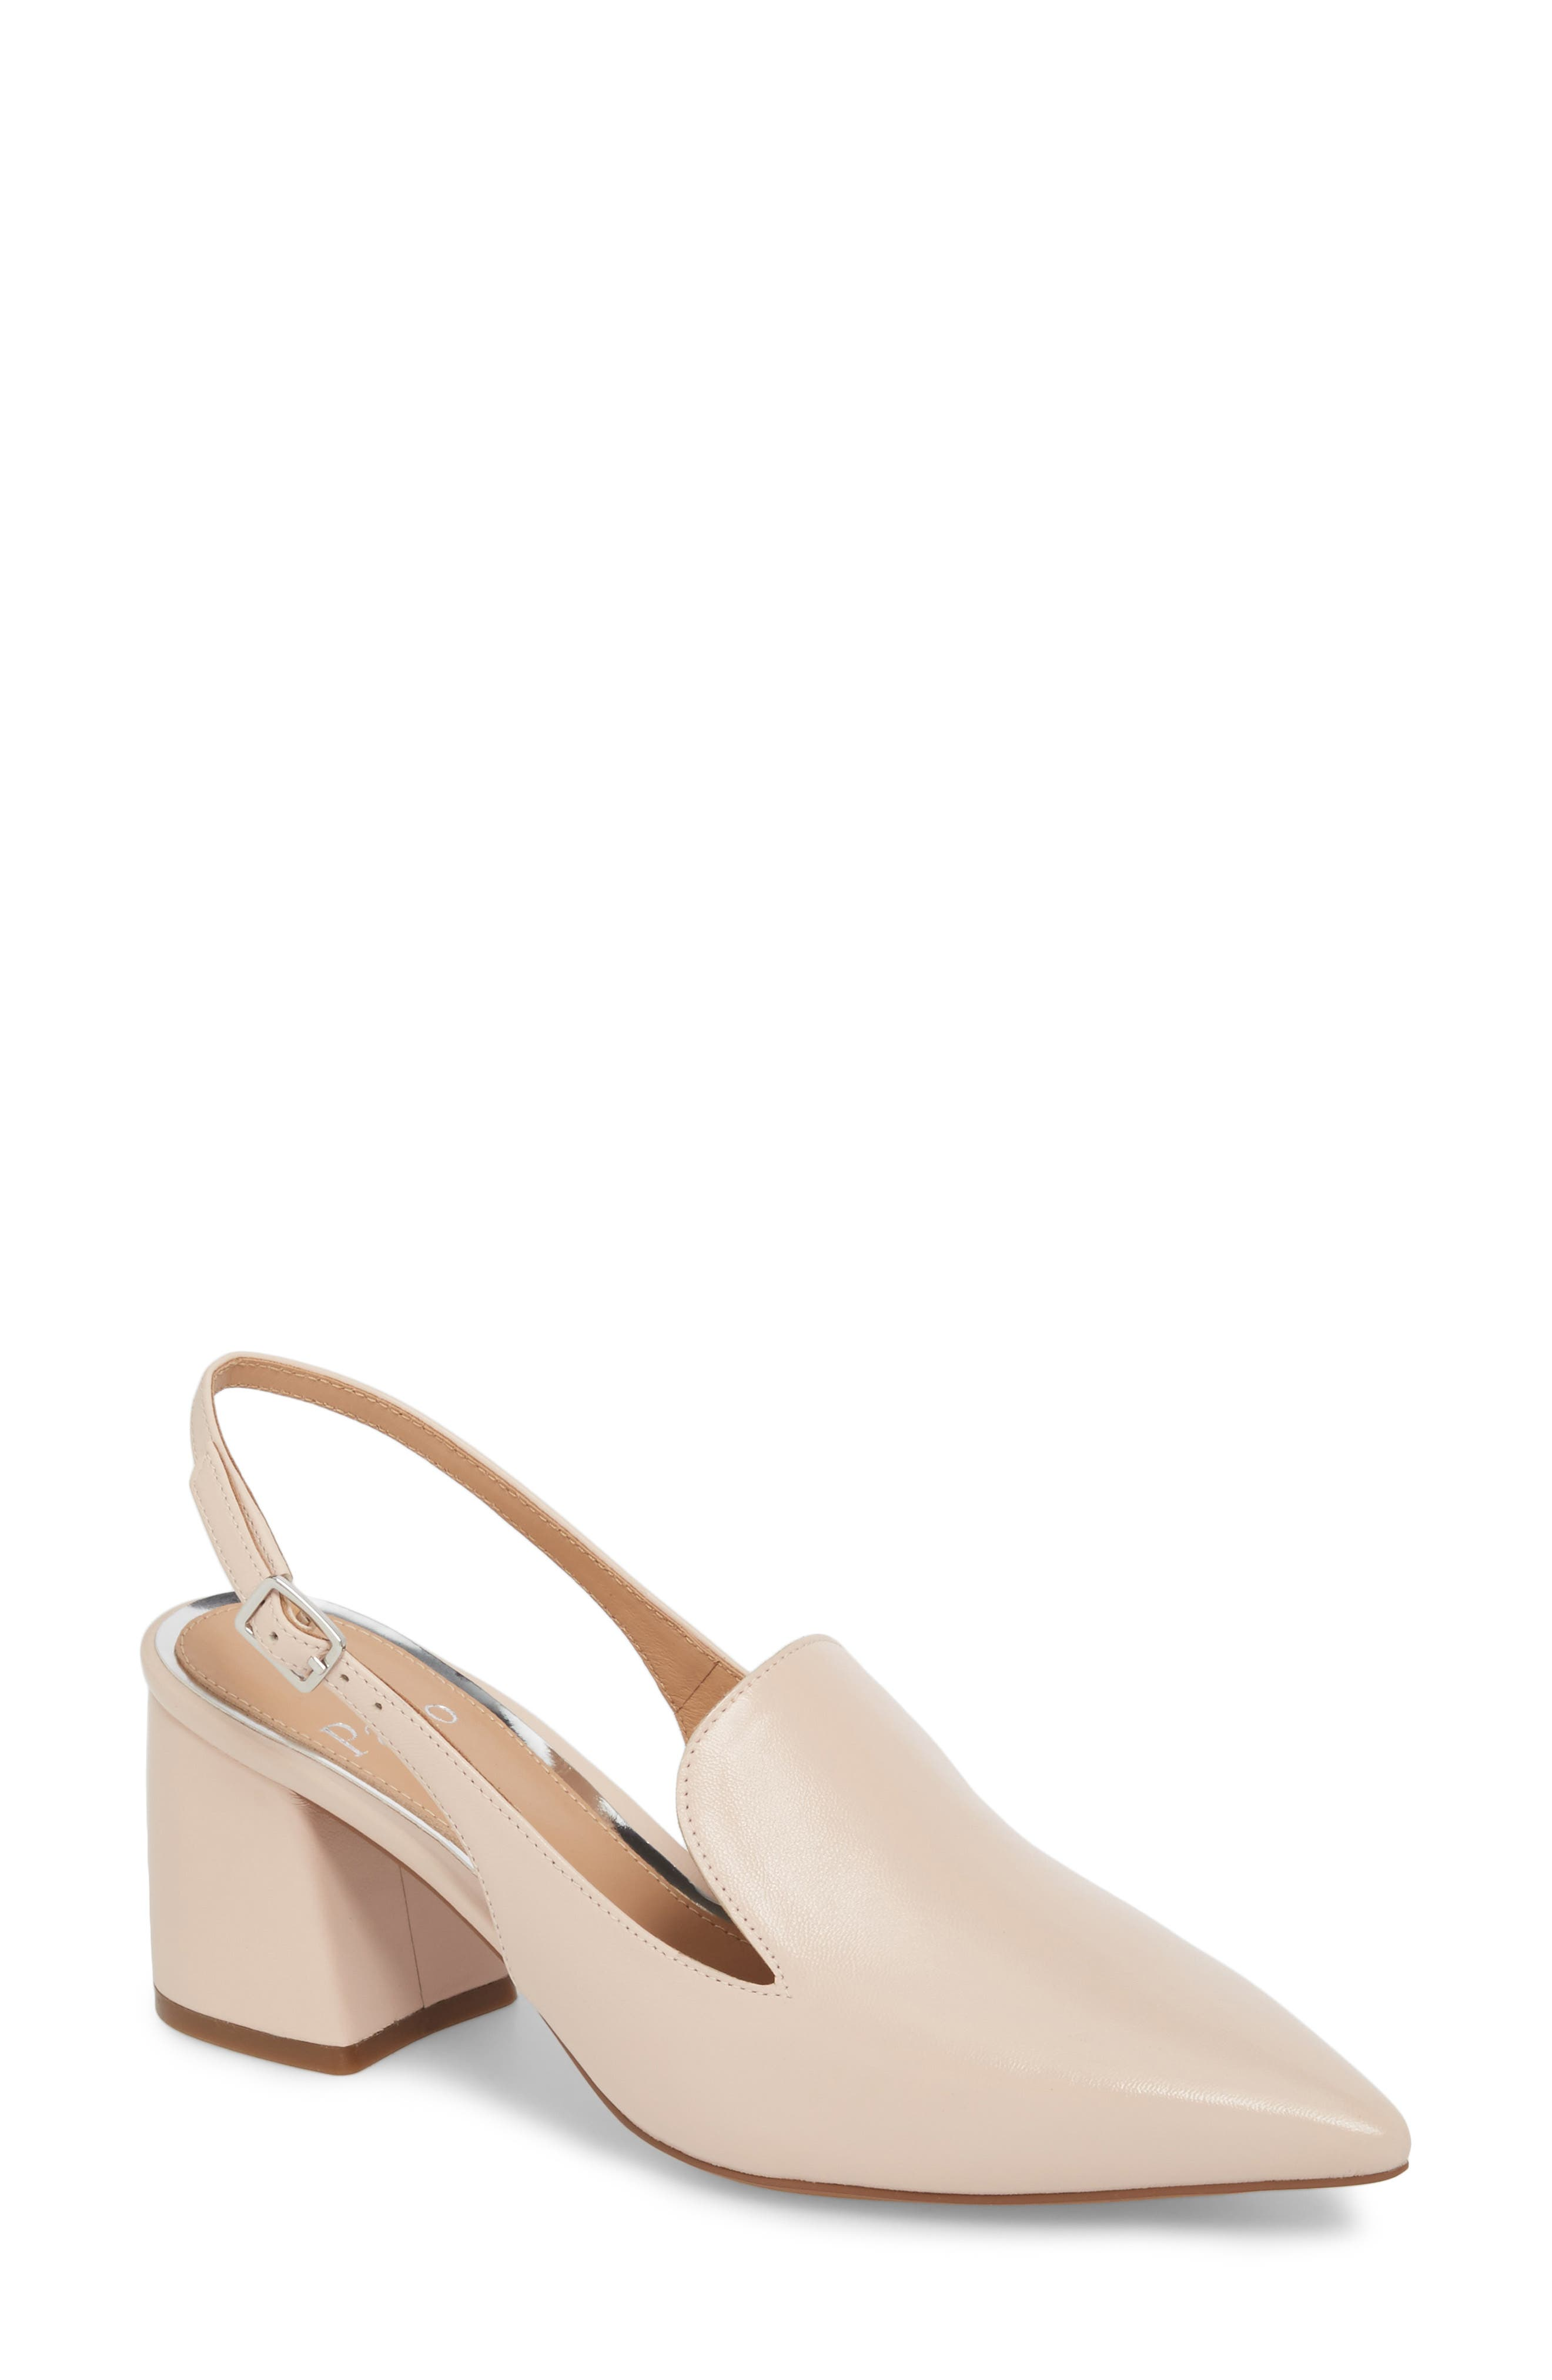 Carly Slingback Pump,                         Main,                         color, Pale Pink Leather